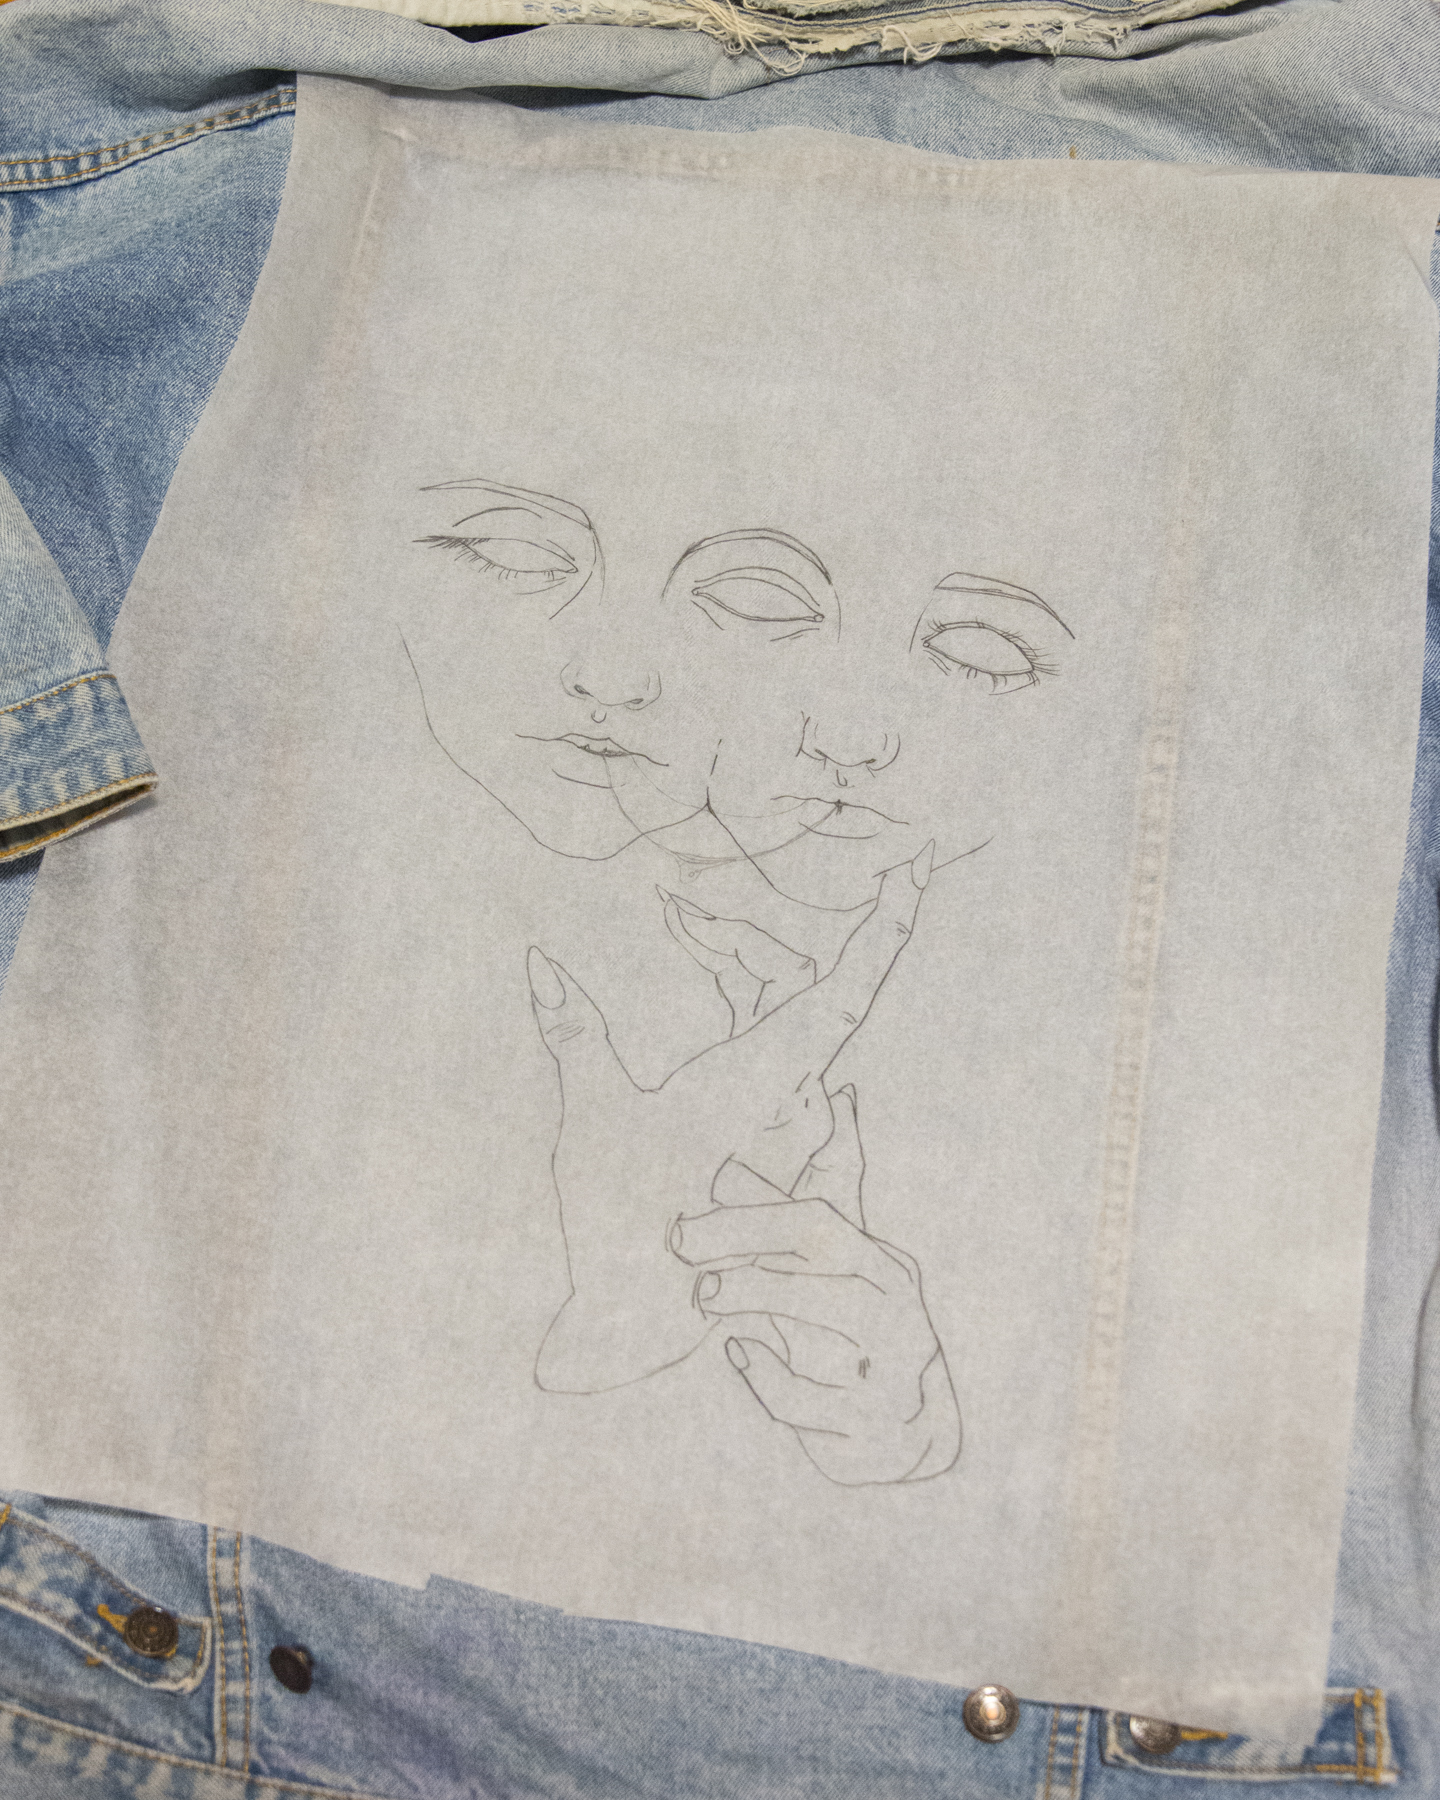 """Mira"" drawing in the process of being transferred onto jacket. © HANDFAST HOTEL 2018"